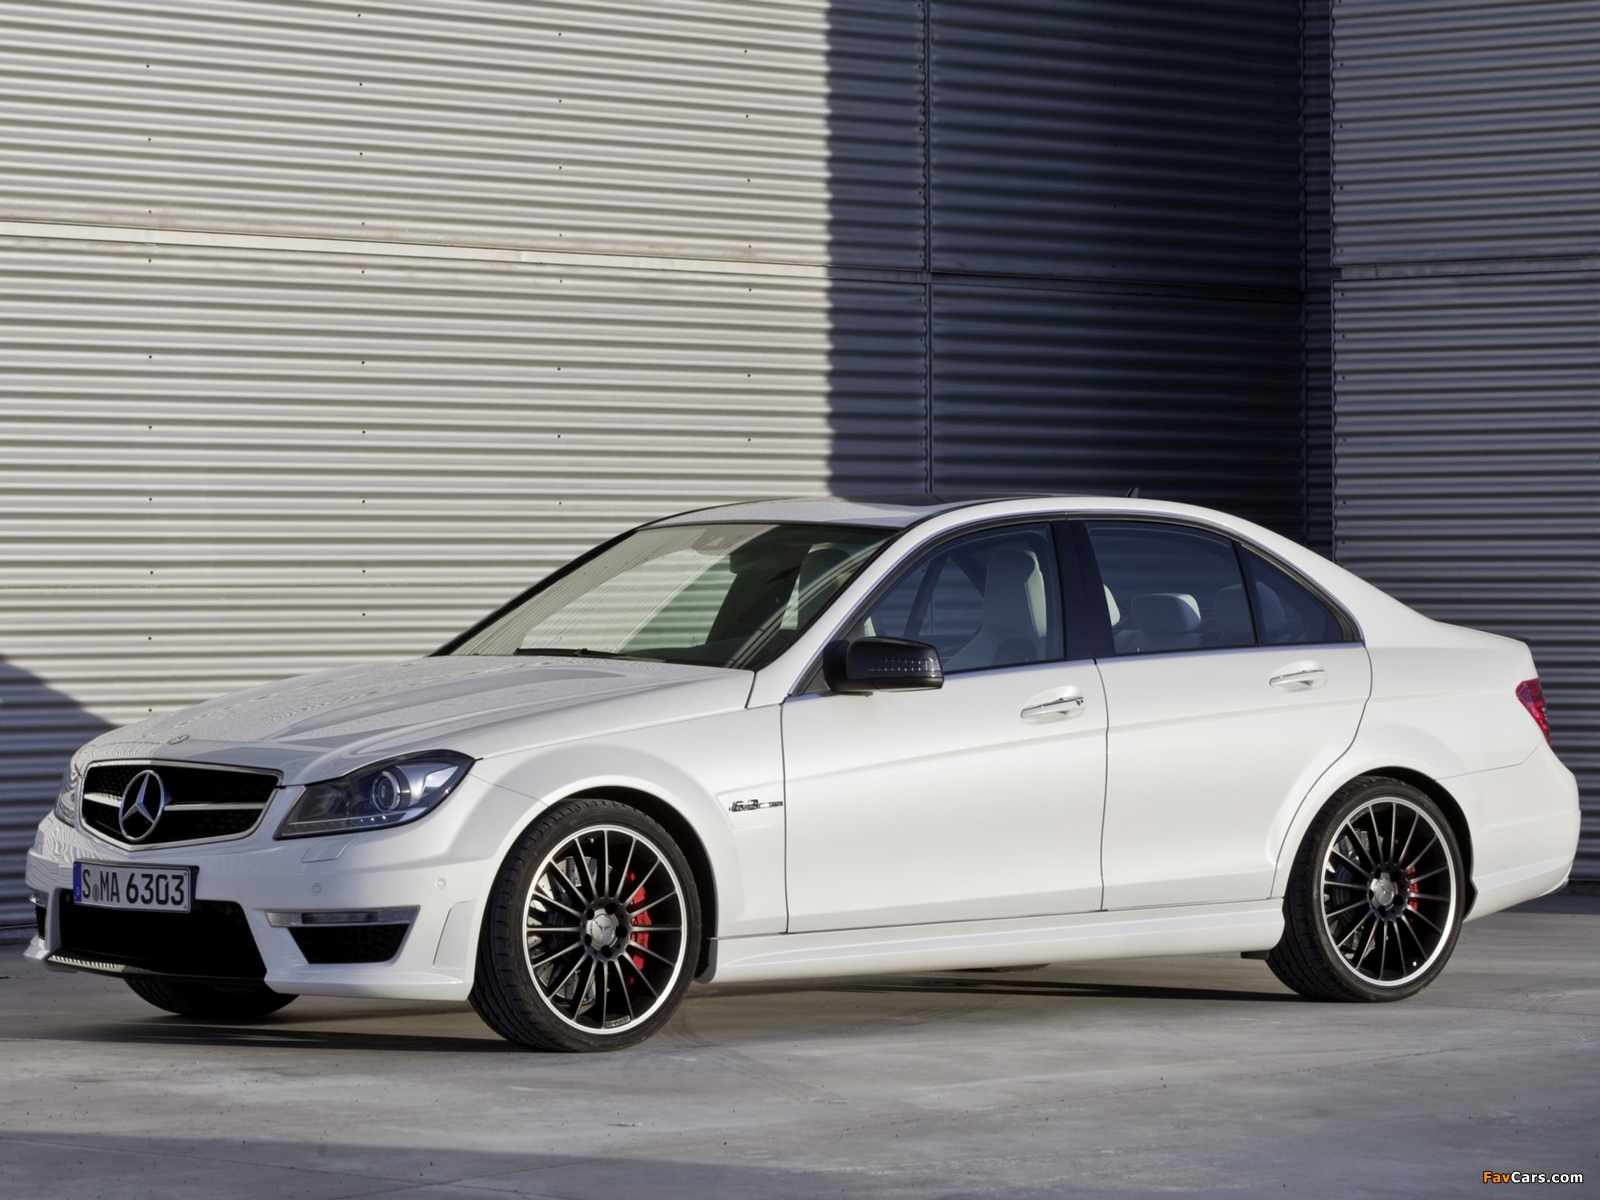 Mercedes-Benz C 63 AMG (W204) 2011 wallpapers (1600 x 1200)